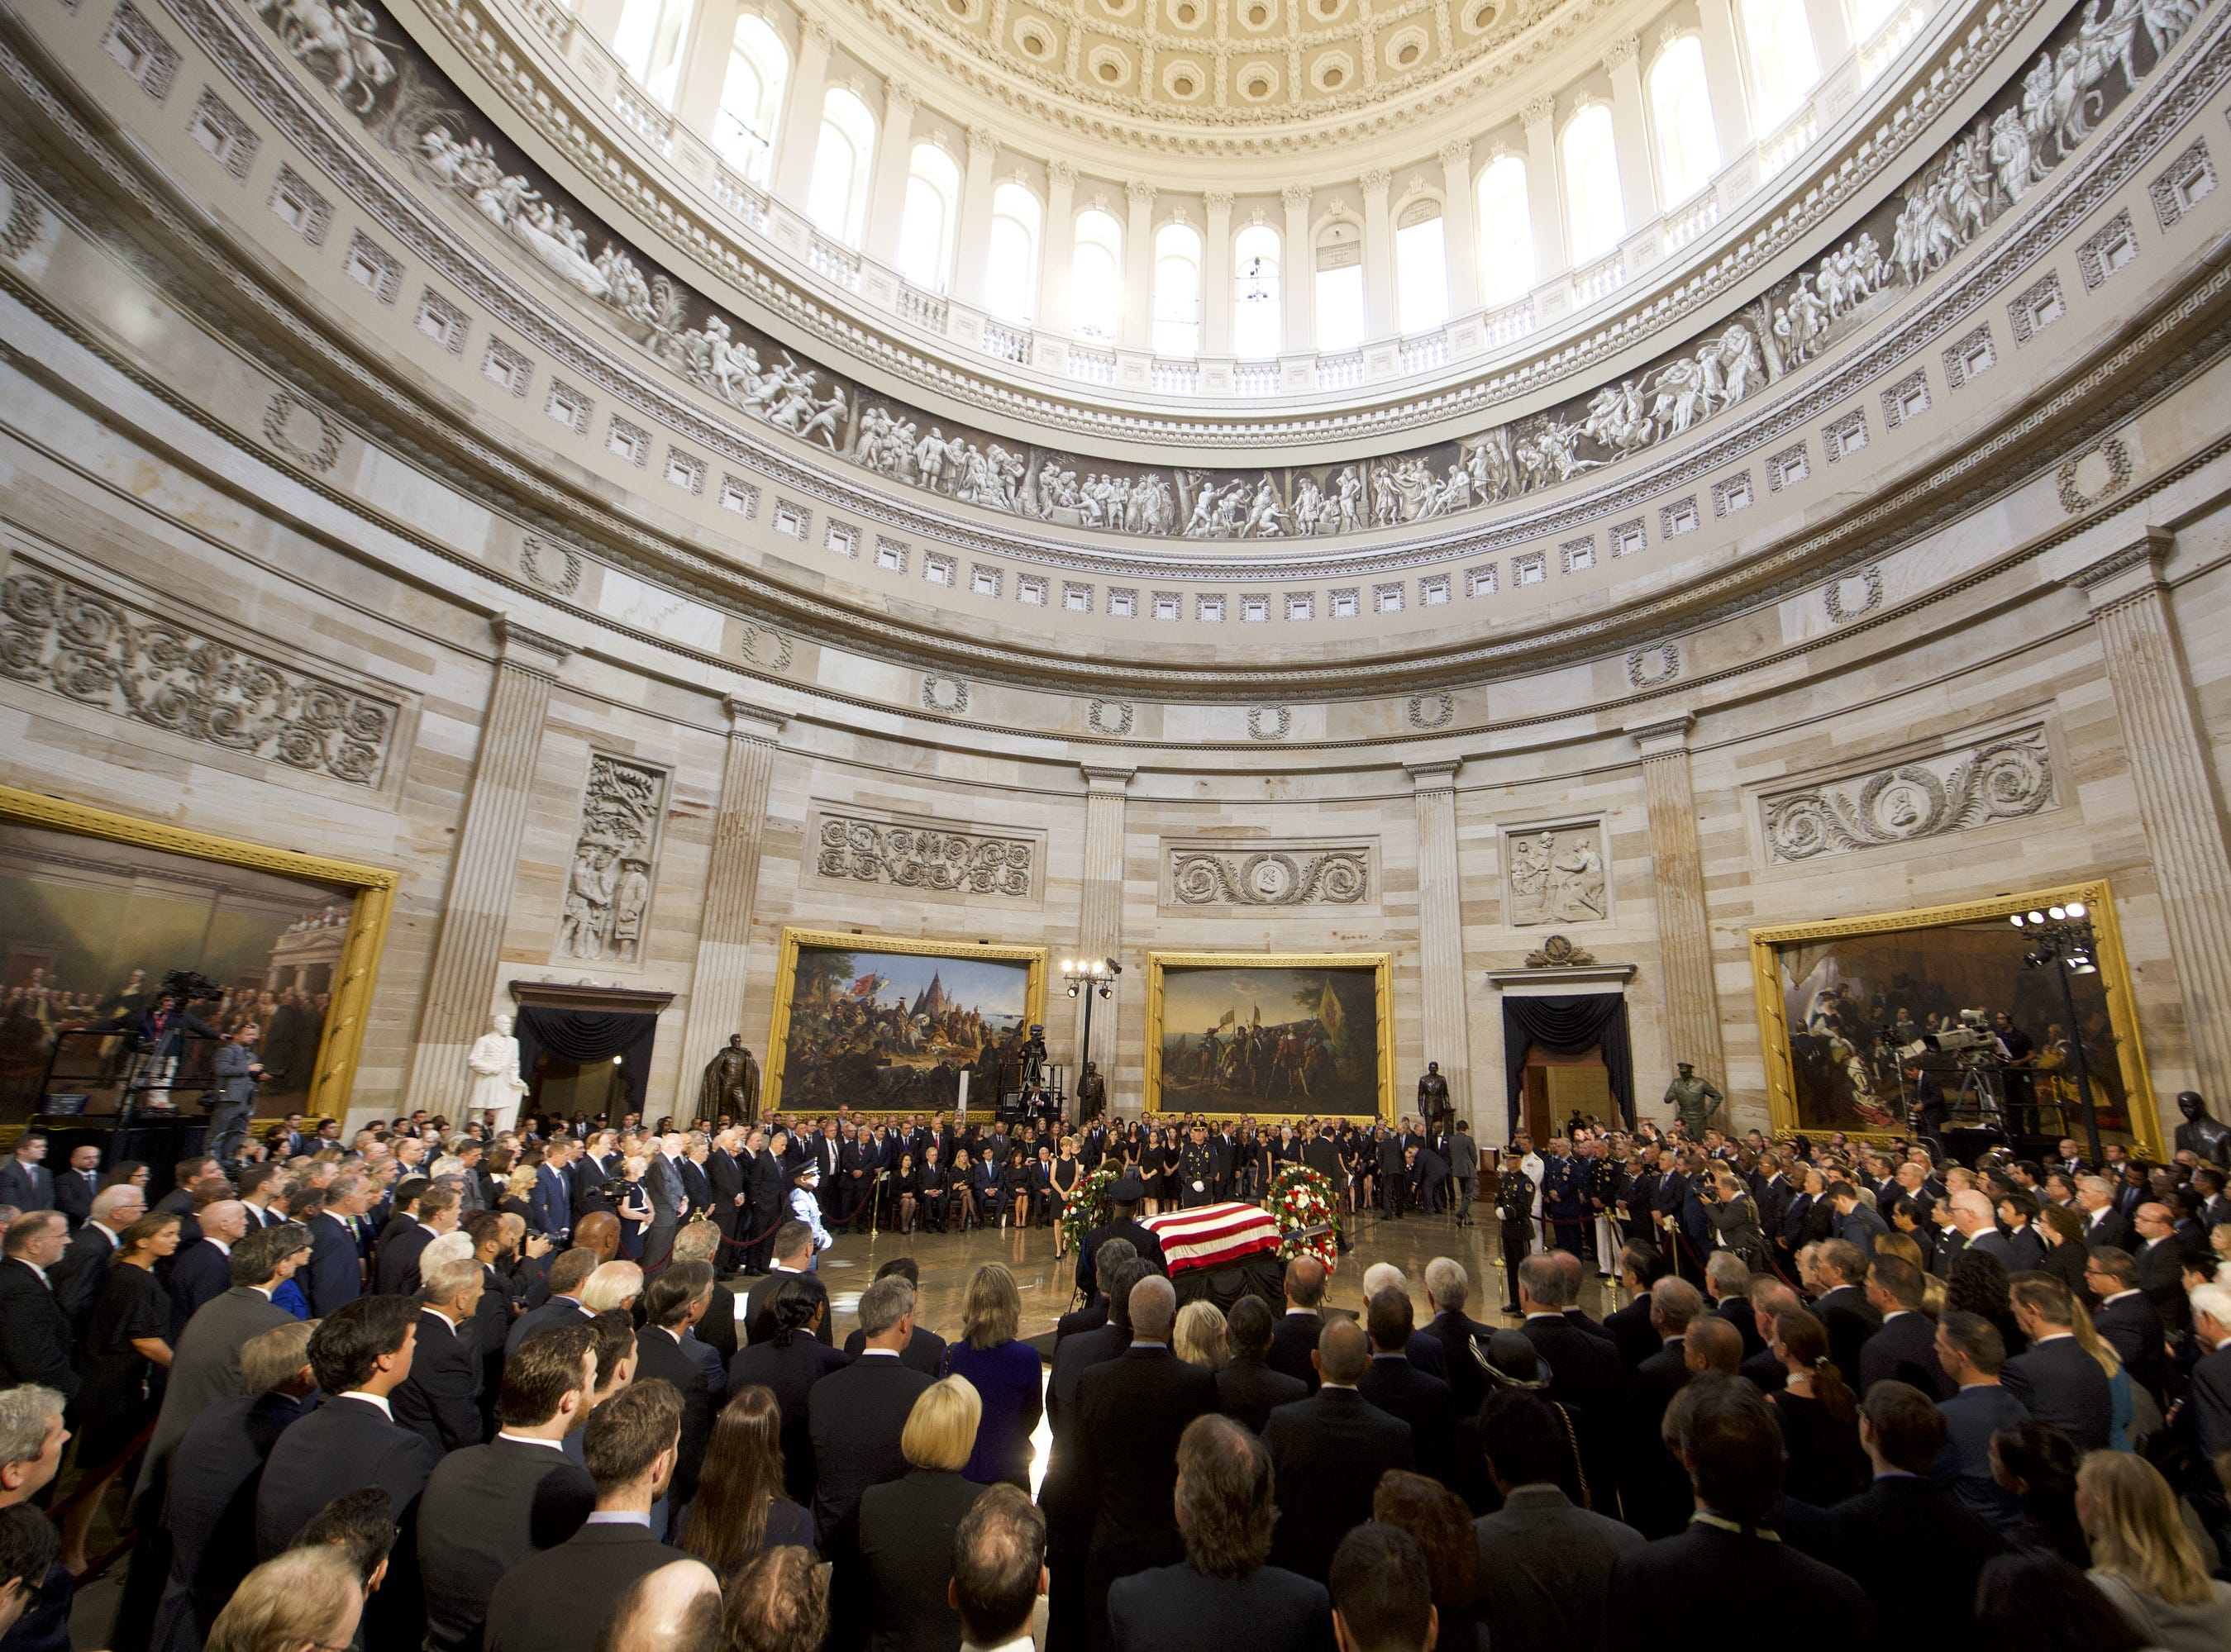 8/31/18 12:26:28 PM -- Washington, DC, U.S.A  -- The body of John McCain lies in state at the U.S. Capitol in Washington on Aug. 31, 2018 in Washington. Sen. McCain died on Aug. 25. --    Photo by Jasper Colt, USA TODAY Staff